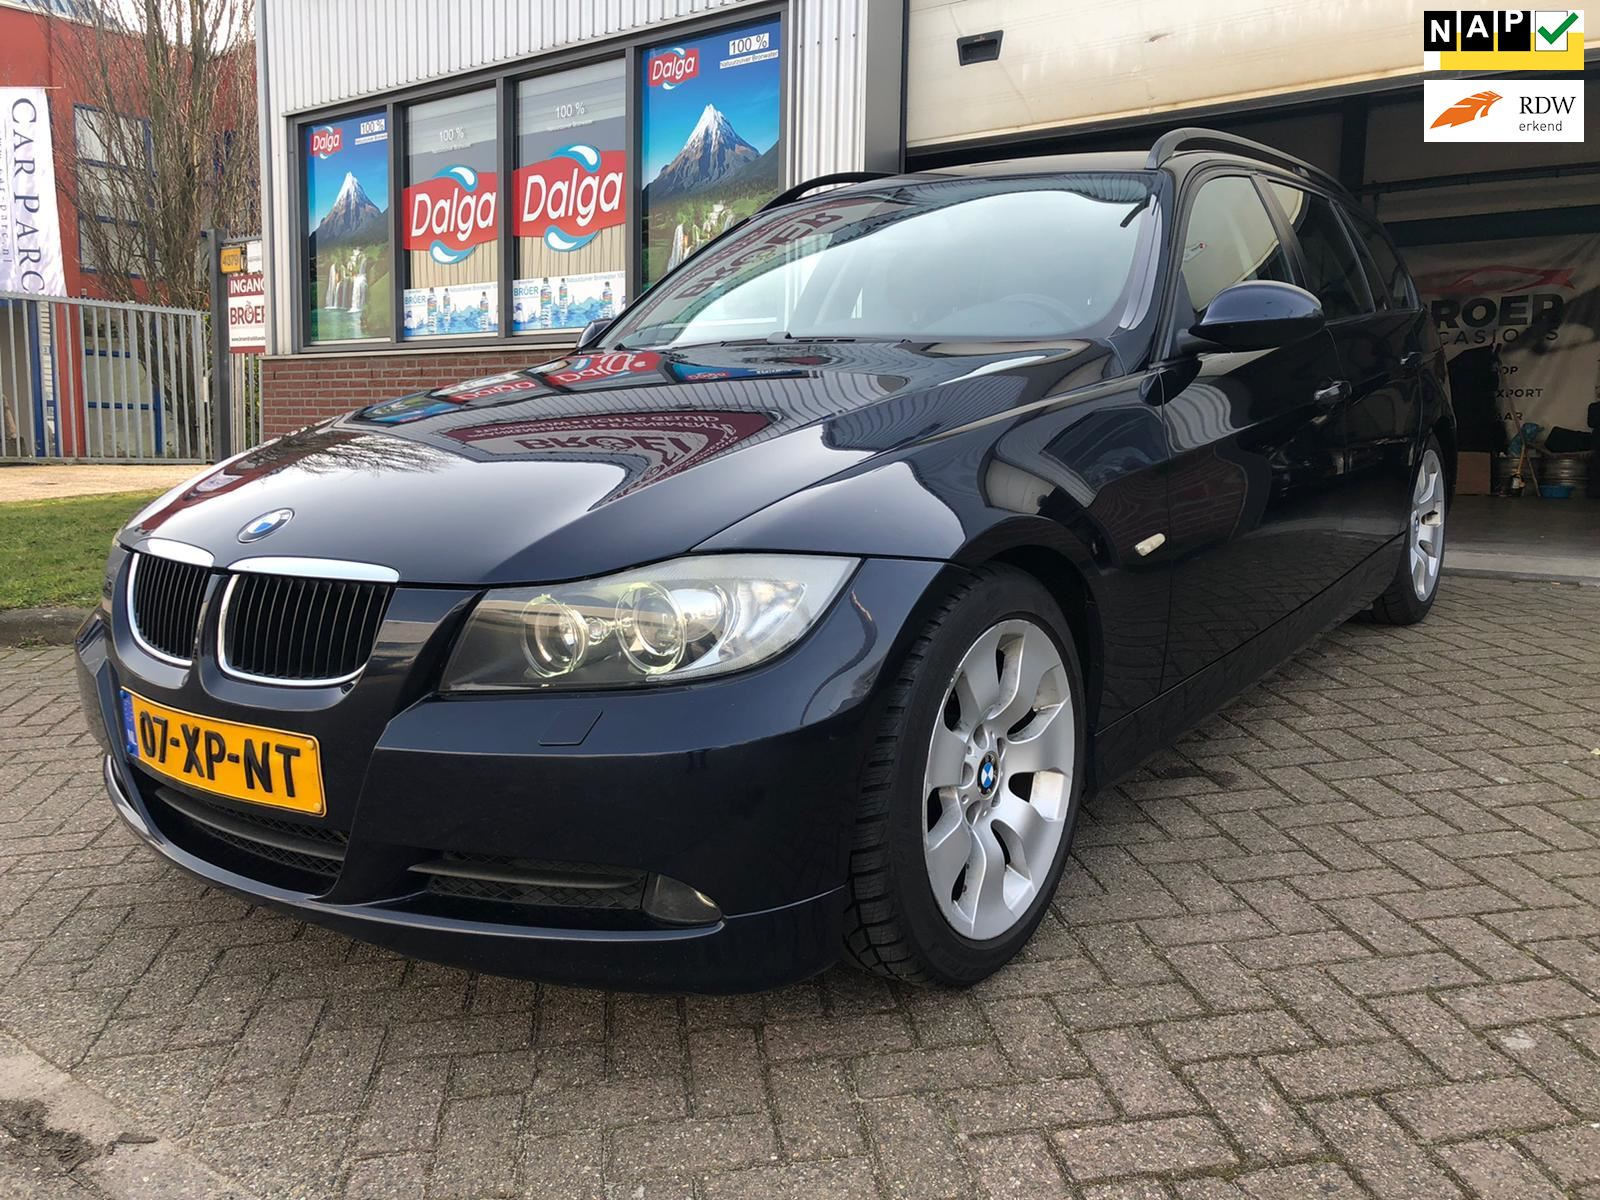 BMW 3-serie Touring occasion - Broer Autohandel